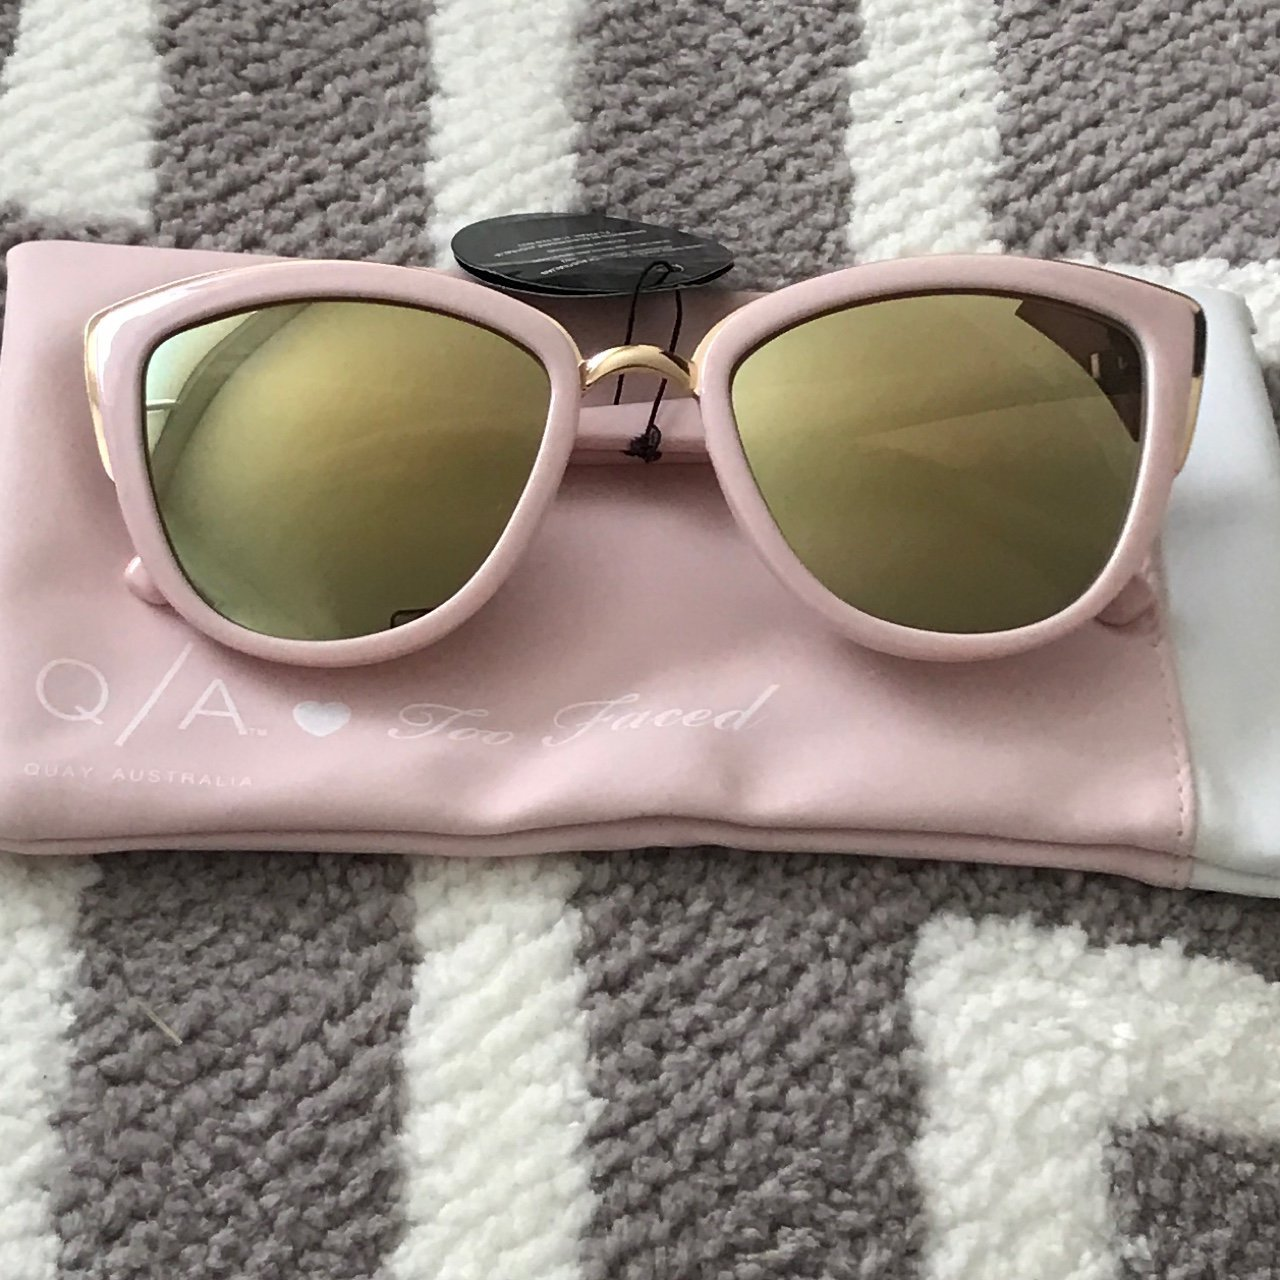 22d122760b948 Limited edition Quay x Too Faced sunglasses. These were in a - Depop